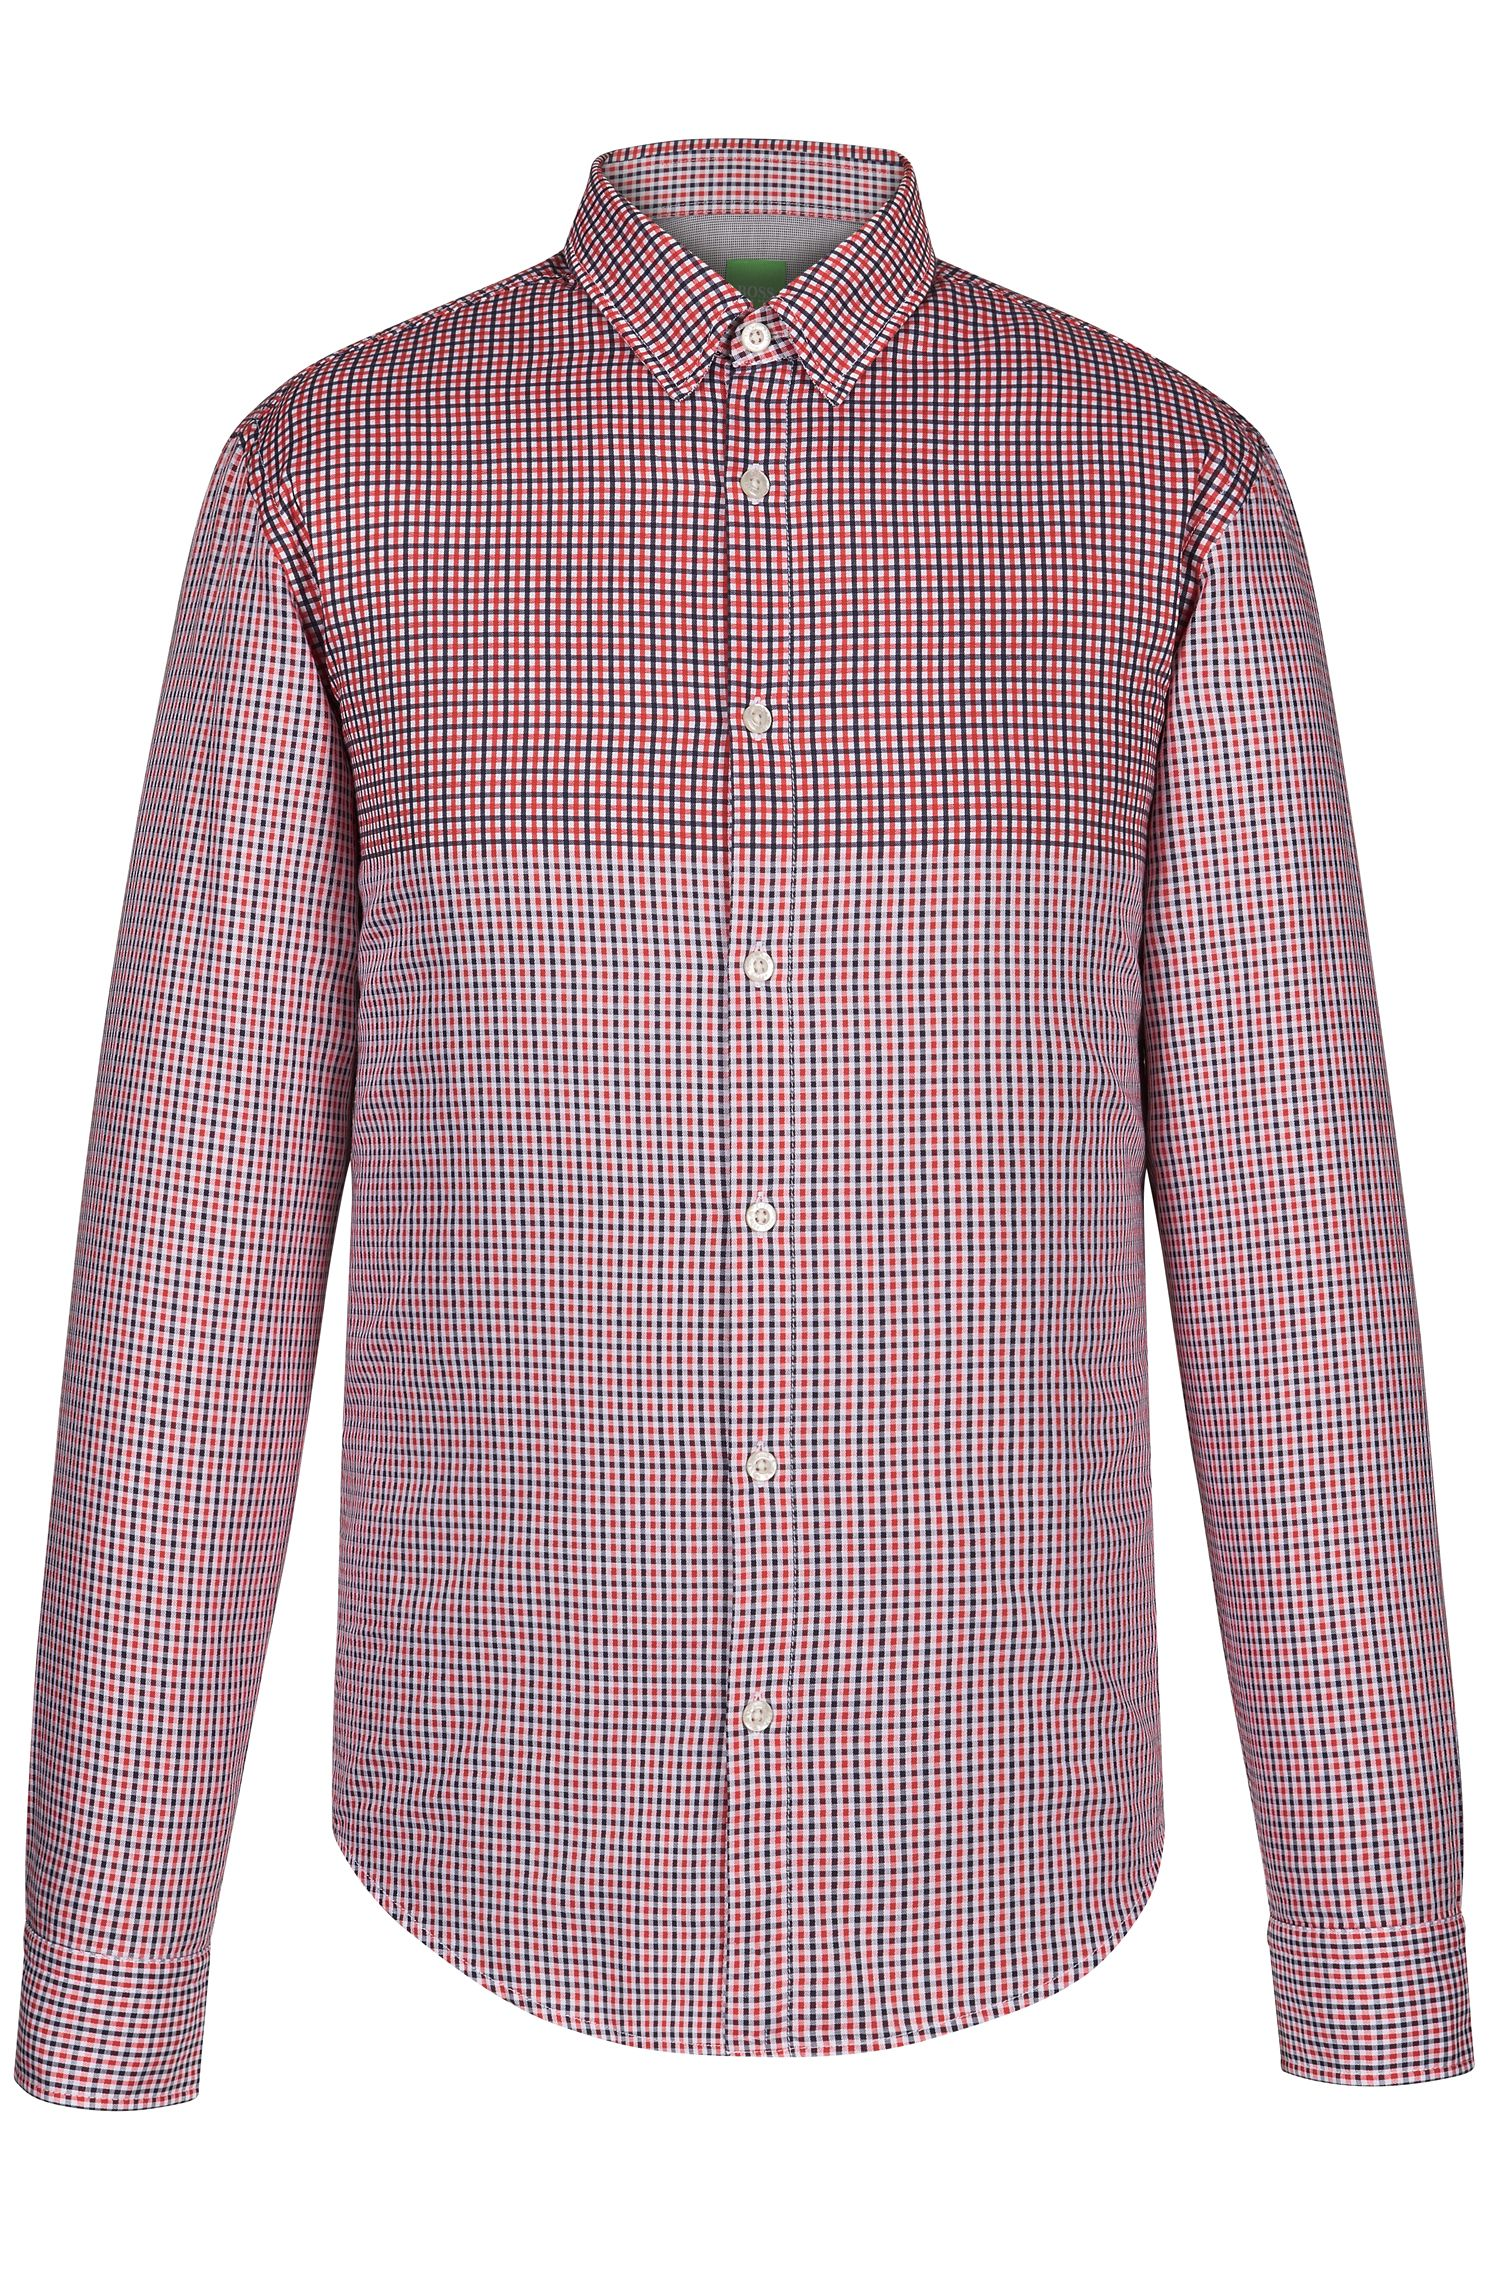 Checked Cotton Button Down Shirt, Regular Fit | C-Briar, Open Red